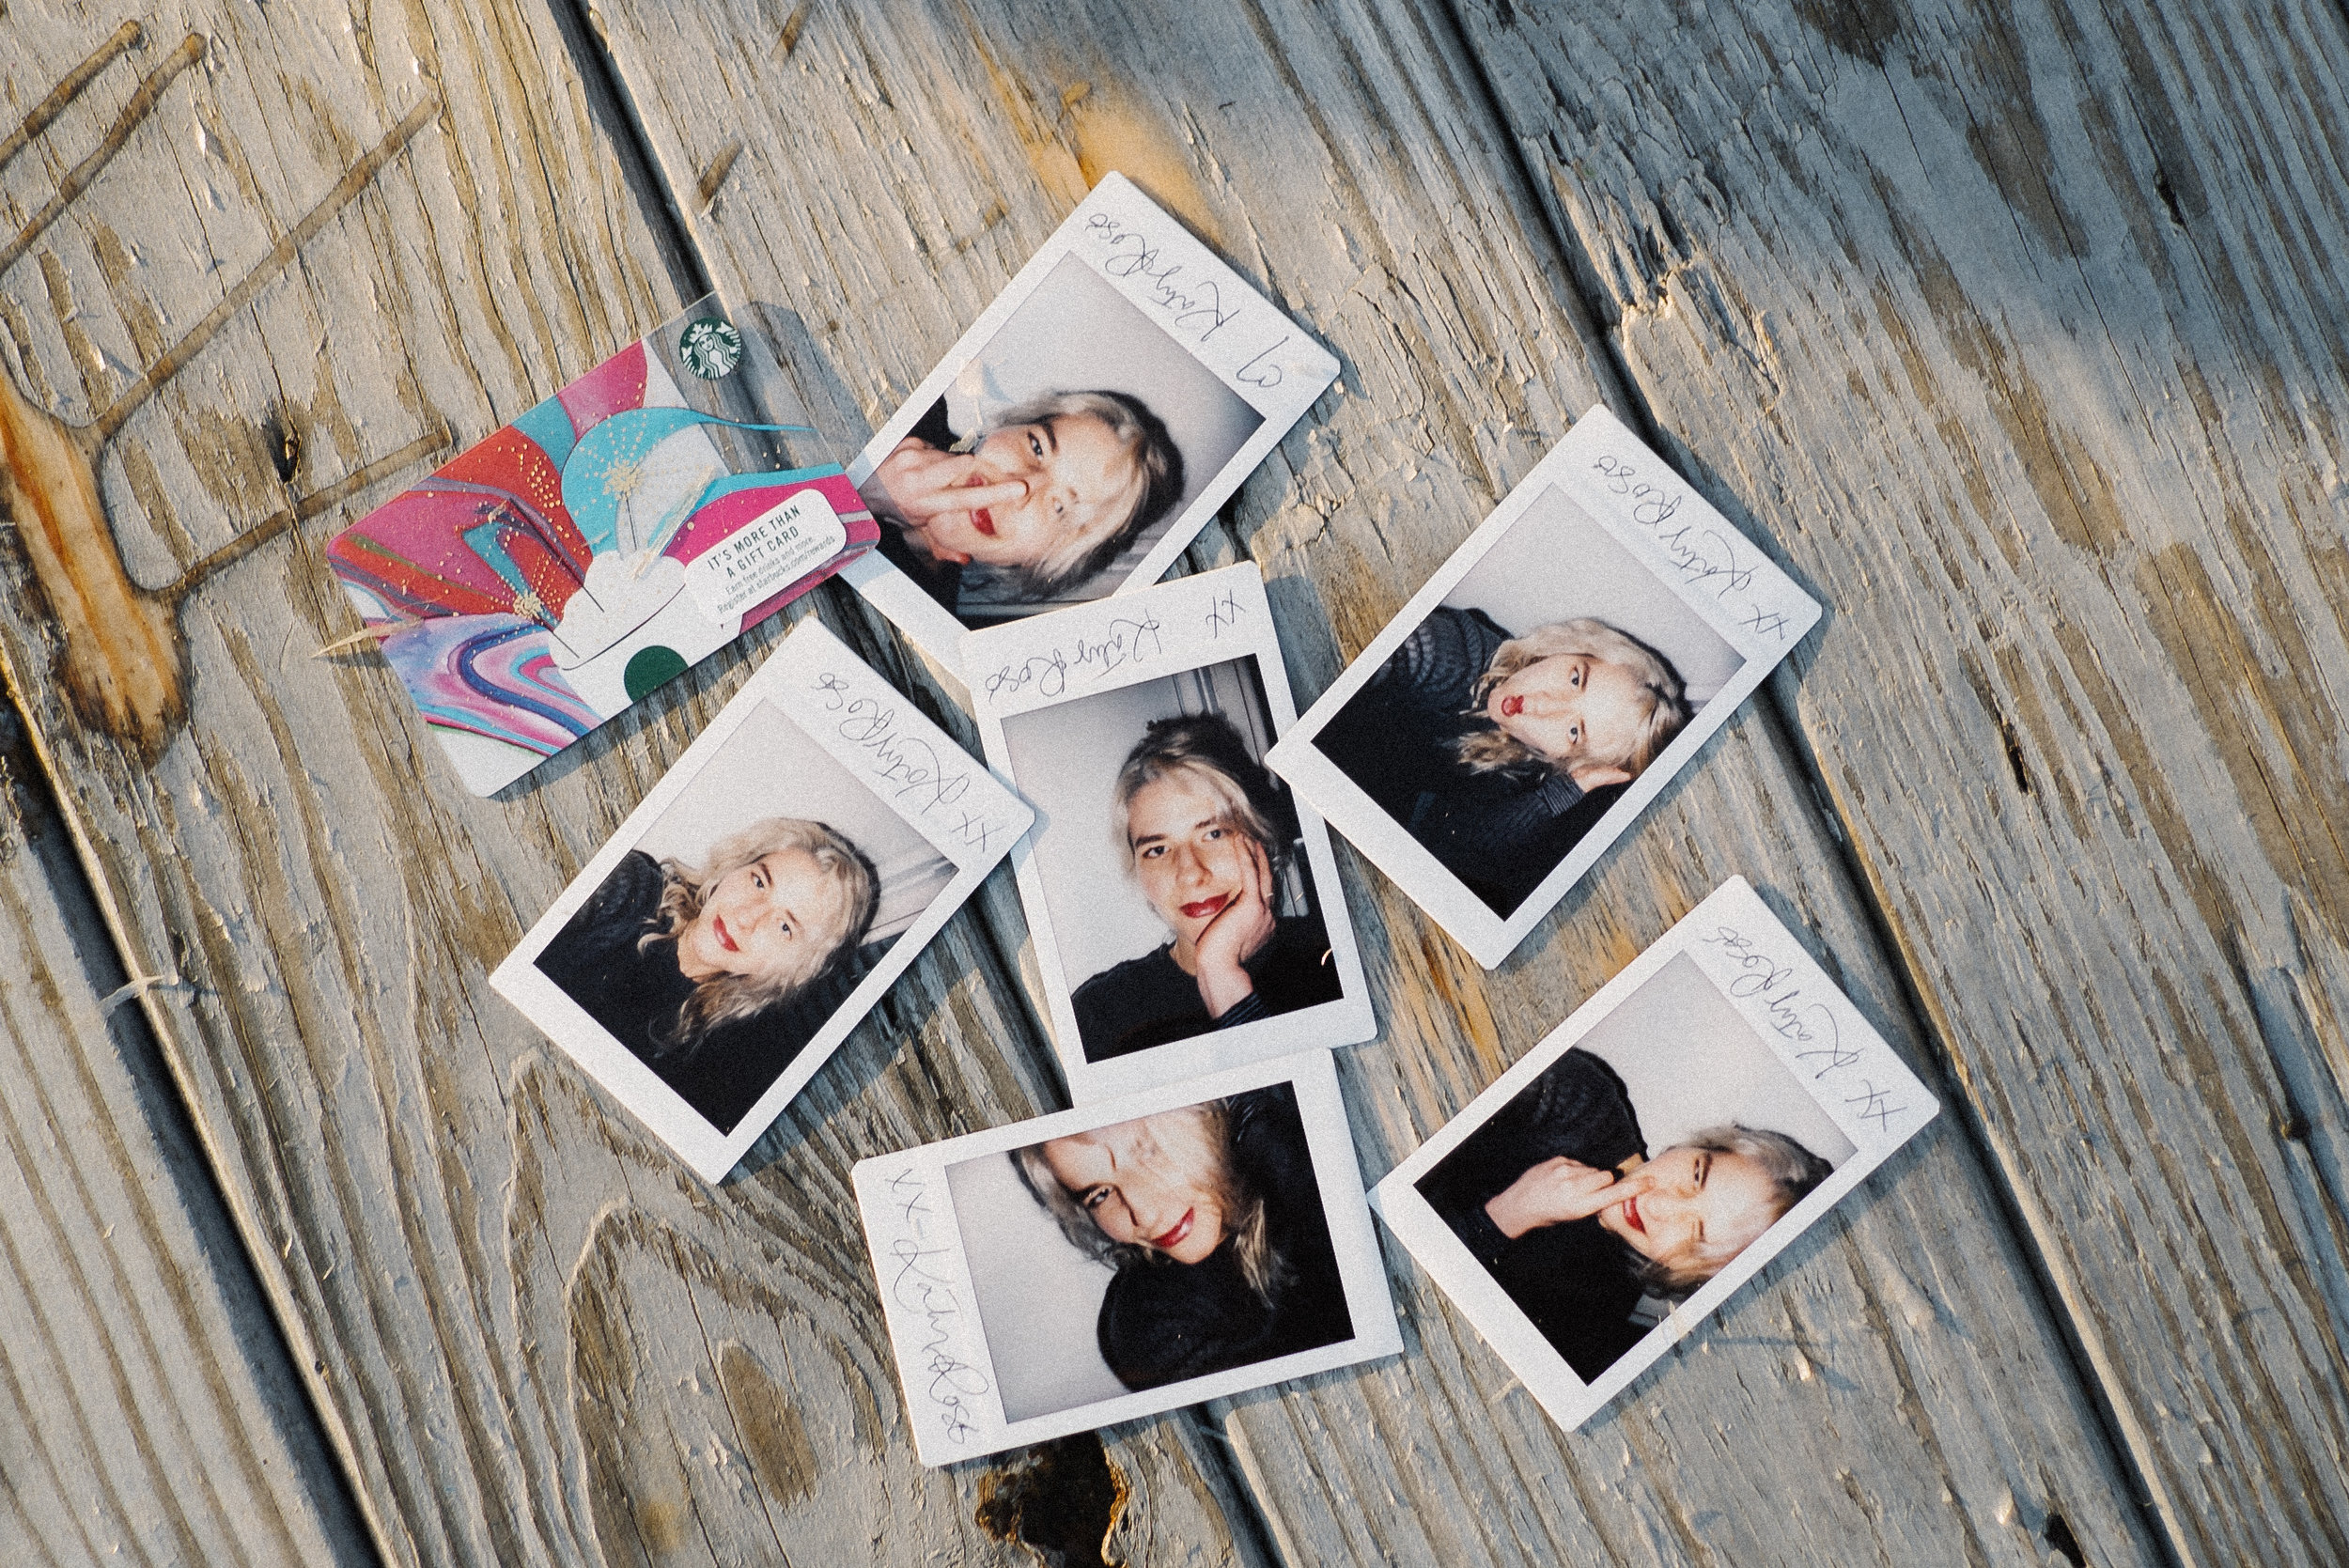 $50 Starbucks Giftcard & Polaroids - On May 1st, I'll randomly pick one person to win all 6 signed polaroids &a $50 Starbucks gift cardx Katy Rose x